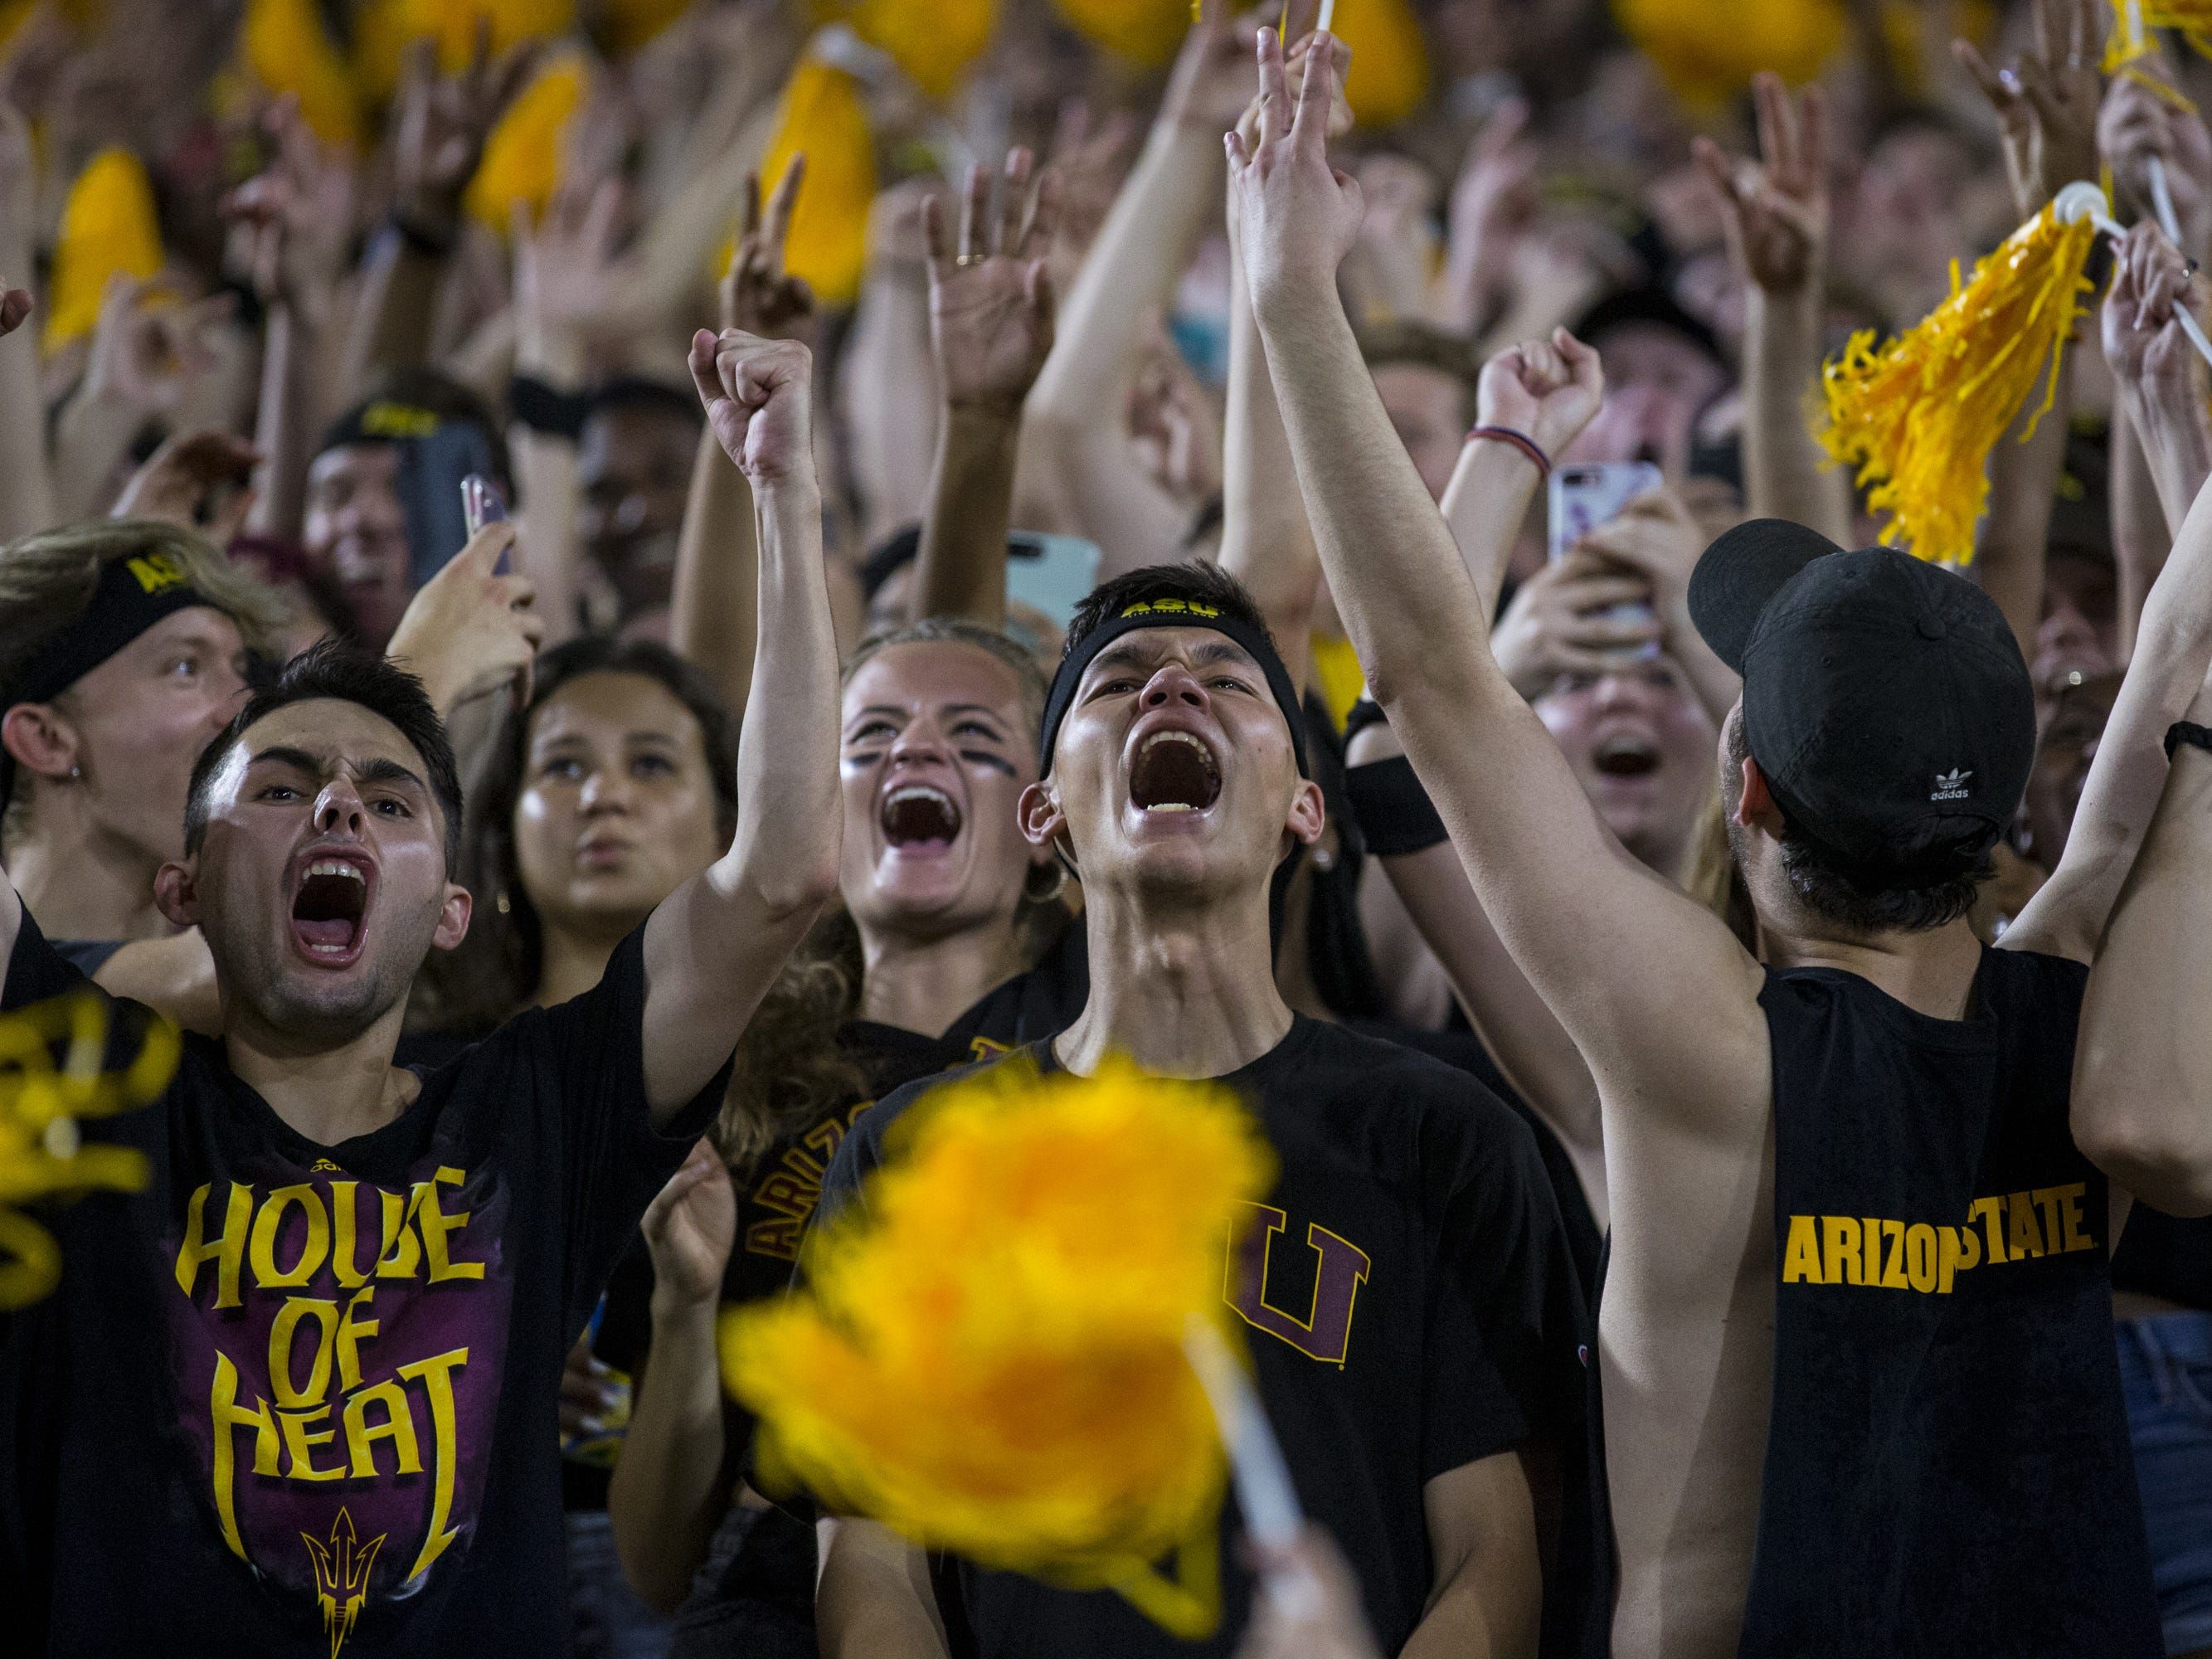 Arizona State fans cheer before the game against Michigan State on Saturday, Sept. 8, 2018, at Sun Devil Stadium in Tempe, Ariz.